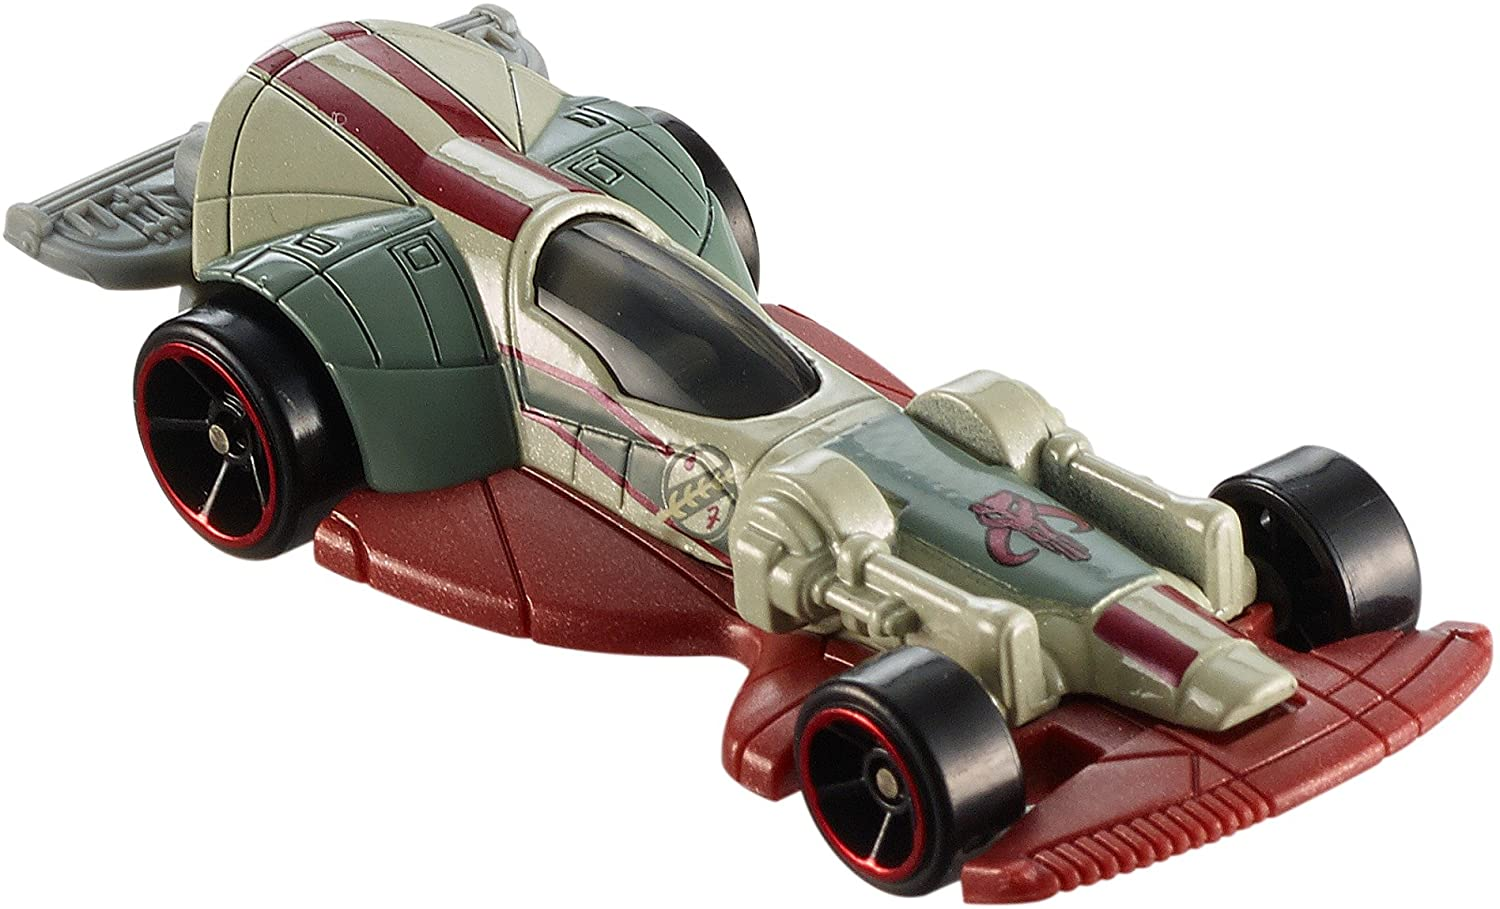 Hot Wheels Star Wars Boba Fett Carship Vehicle